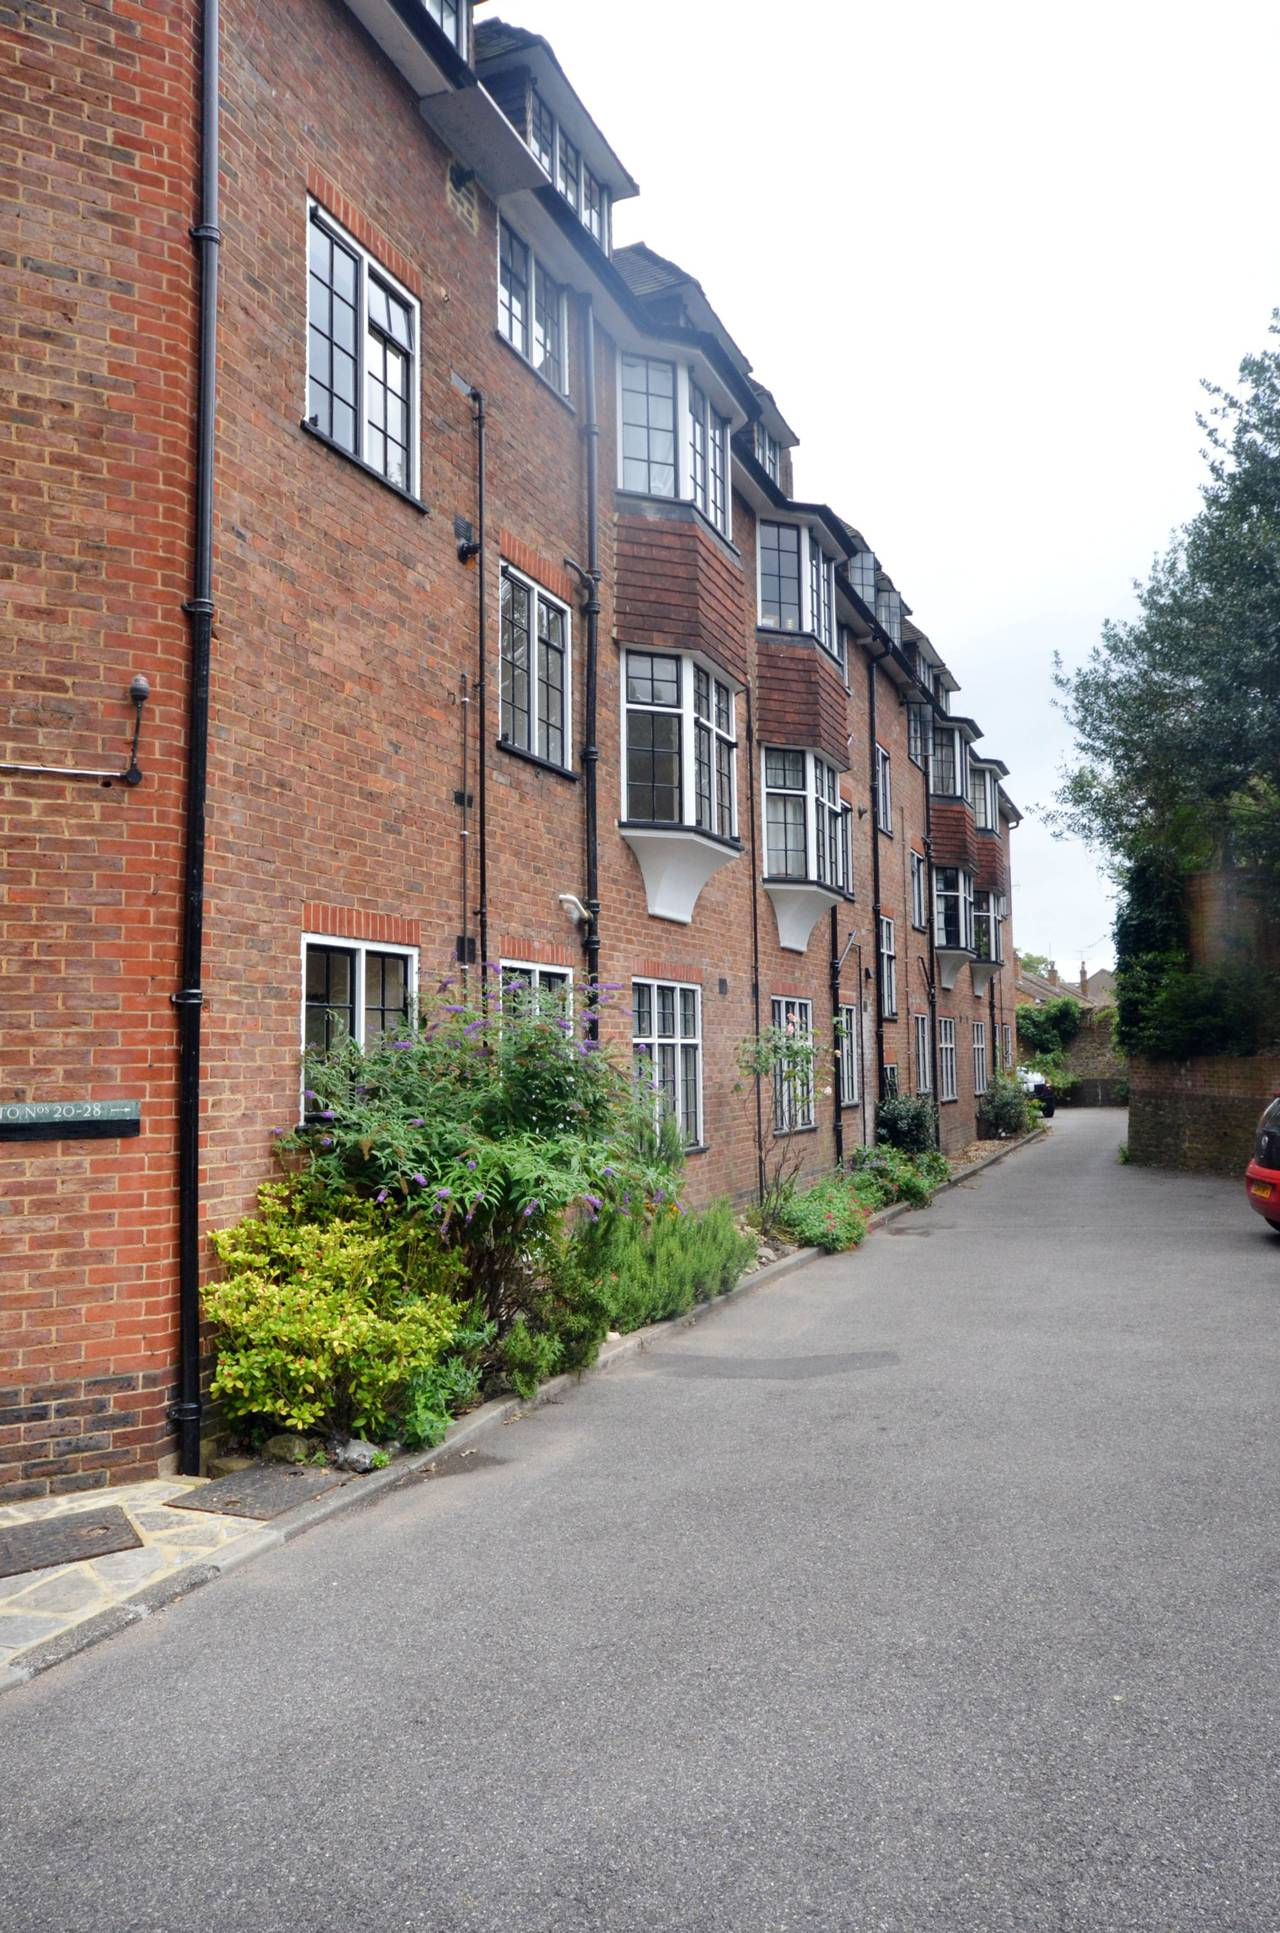 1 bedroom flat to rent Condor Court Guildford GU GU2 4BP  TheHouseShopcom